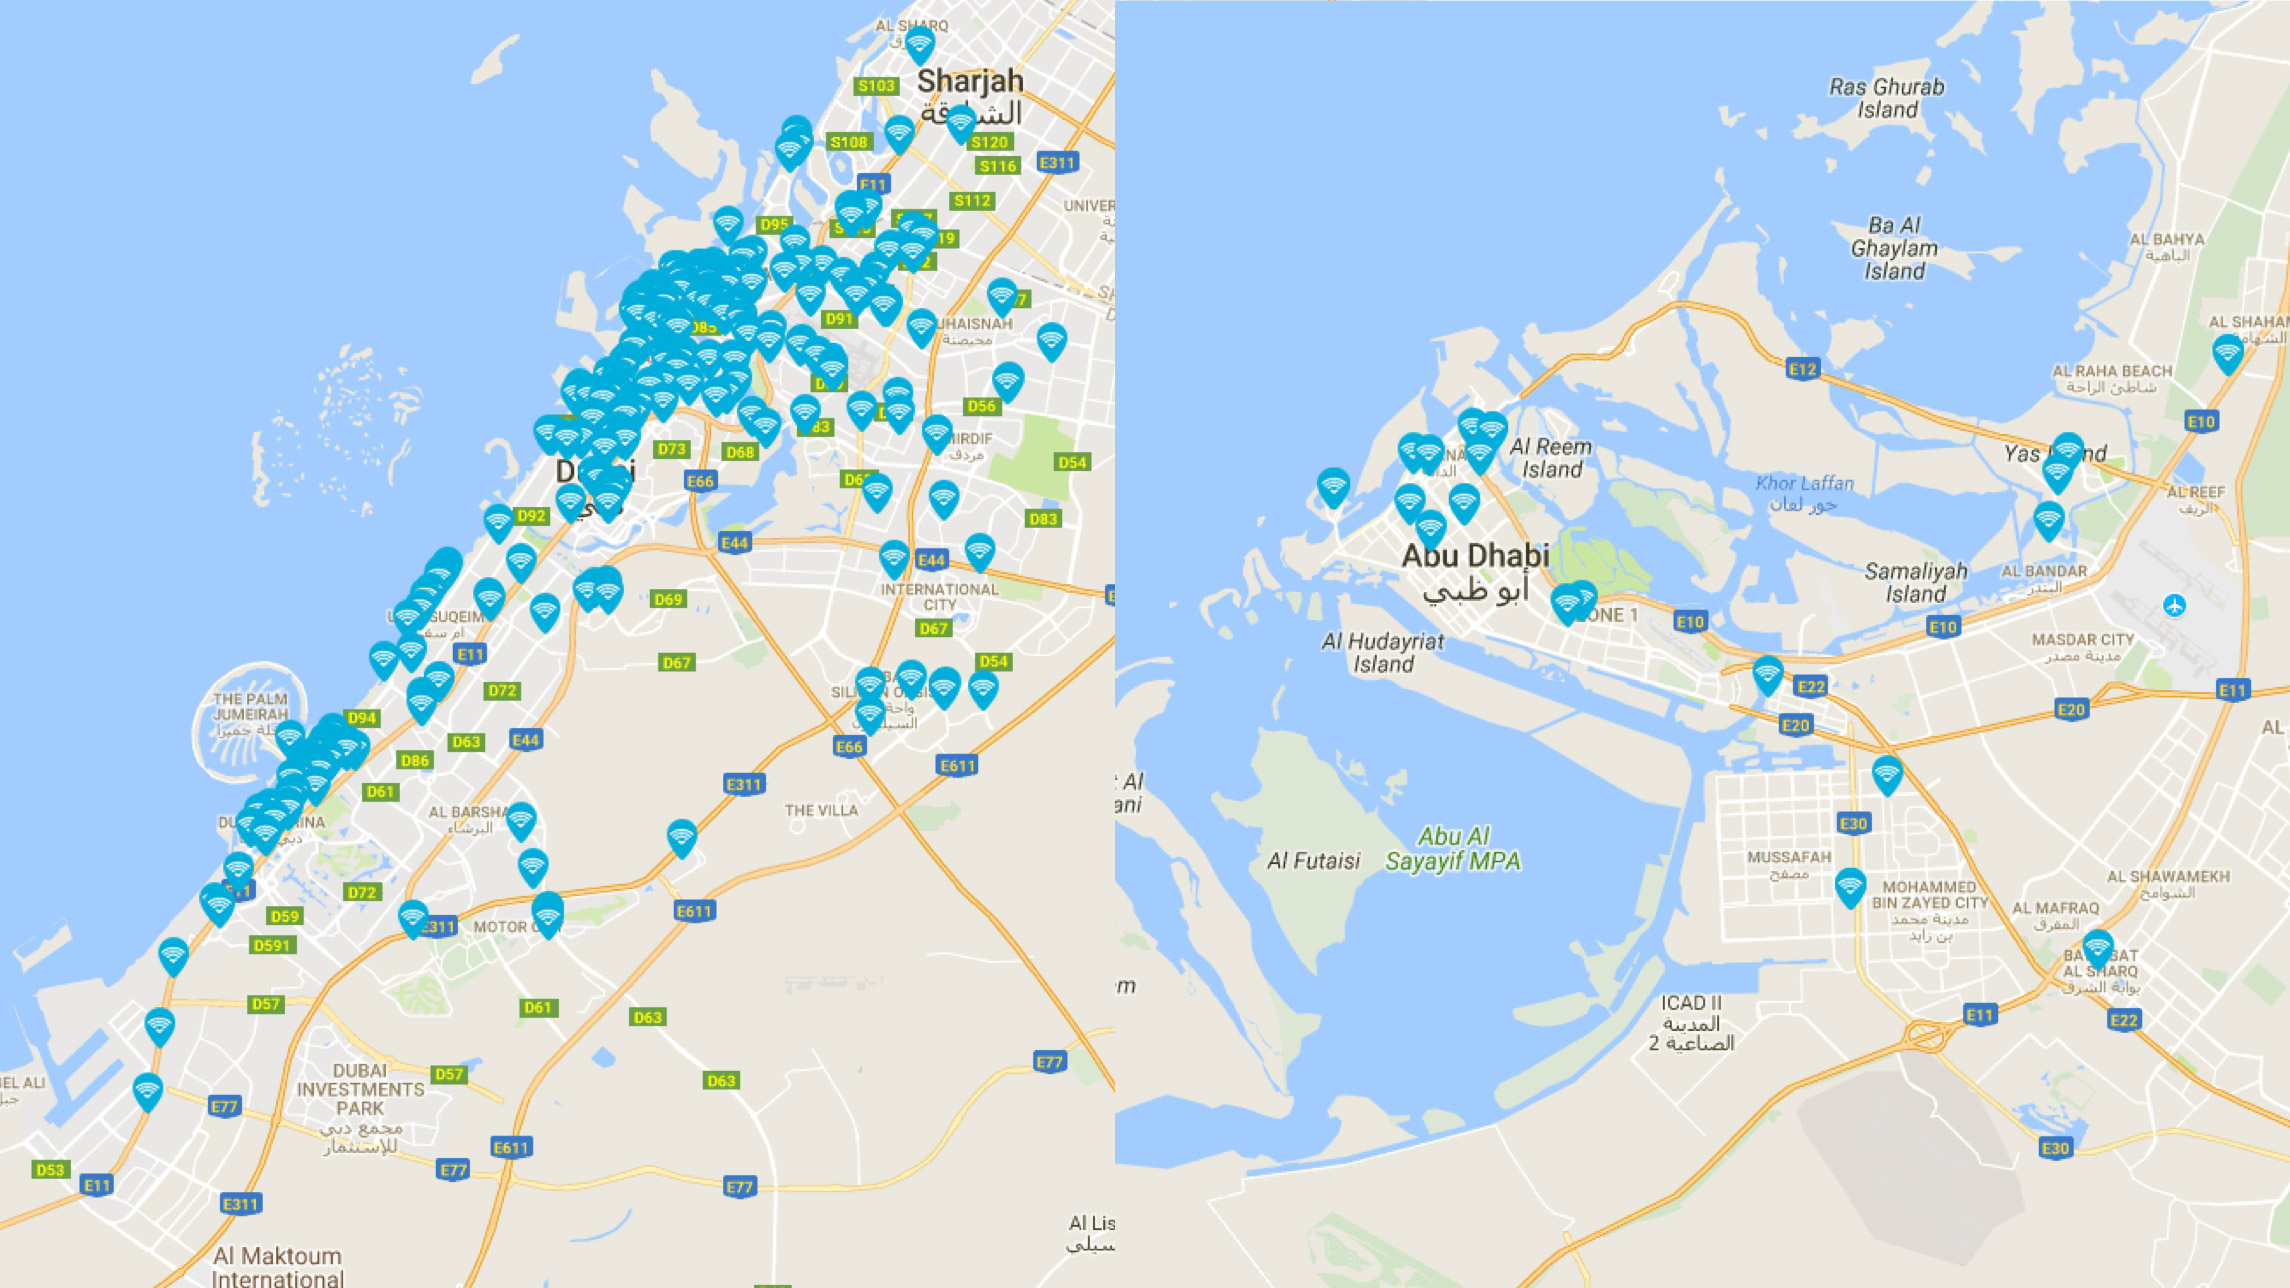 iconiction-wifi-uae-map.jpg